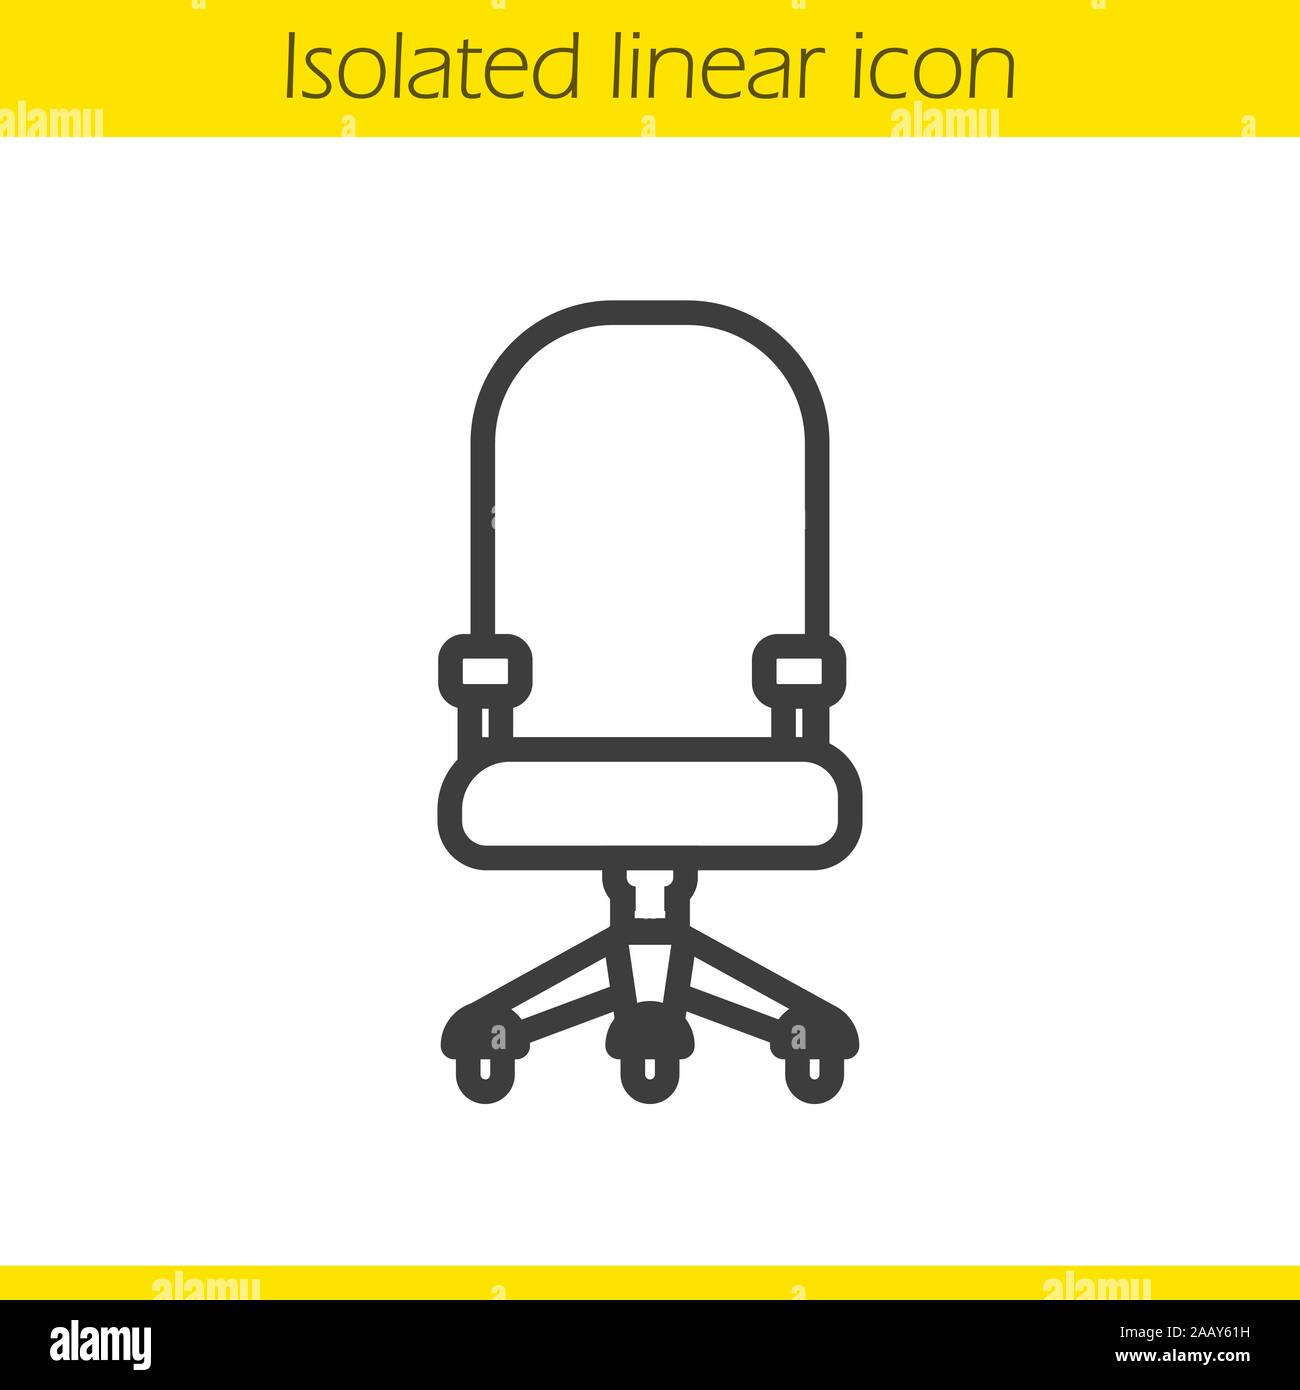 Computer chair linear icon. Thin line illustration. Office chair